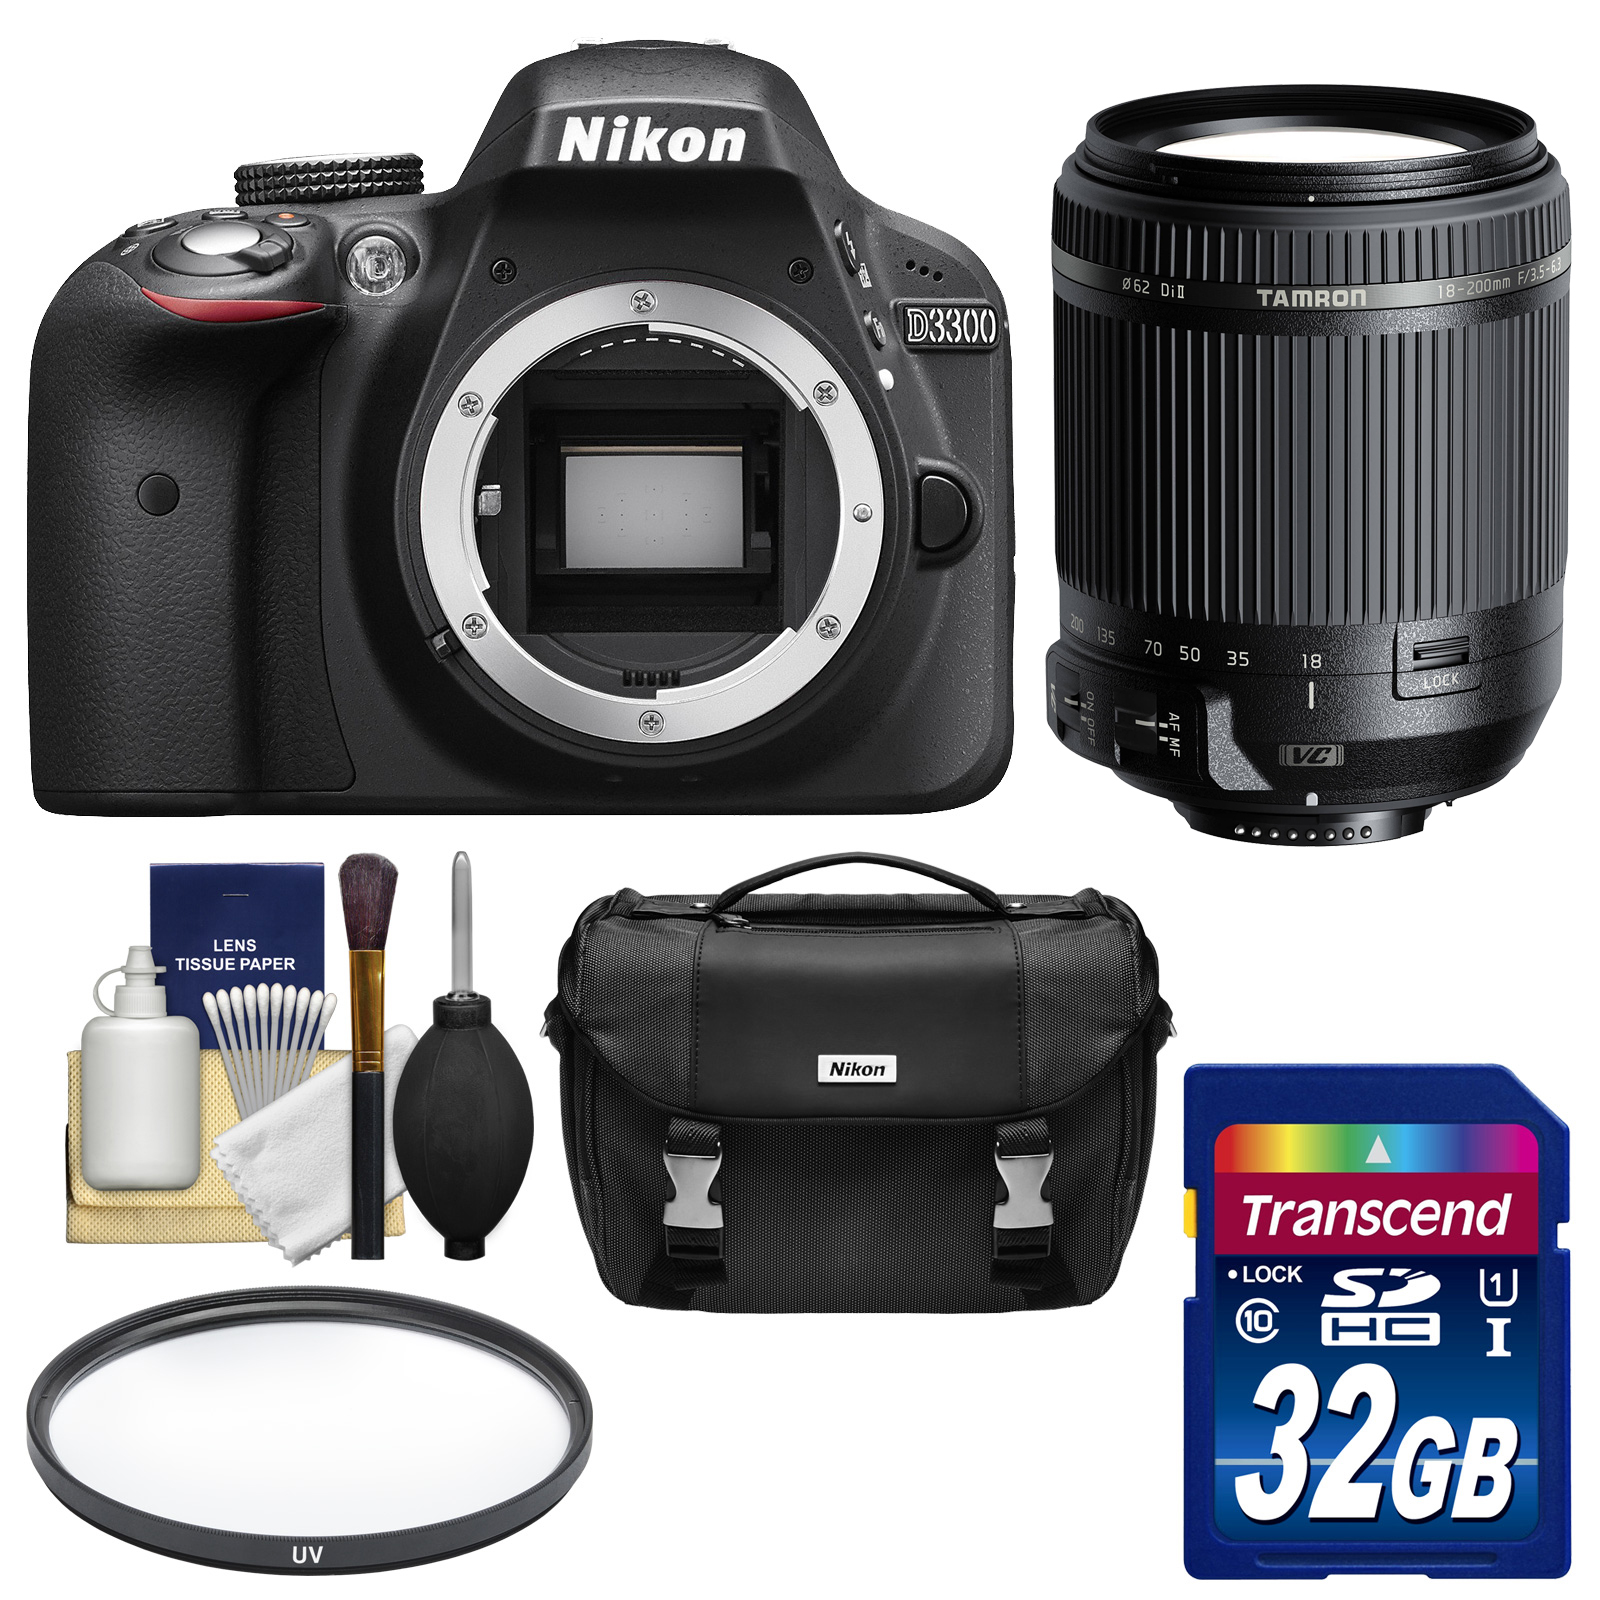 Nikon D3300 Digital SLR Camera Body (Black) Factory Refurbished with Tamron 18-200mm VC Lens + 32GB Card +... by Nikon